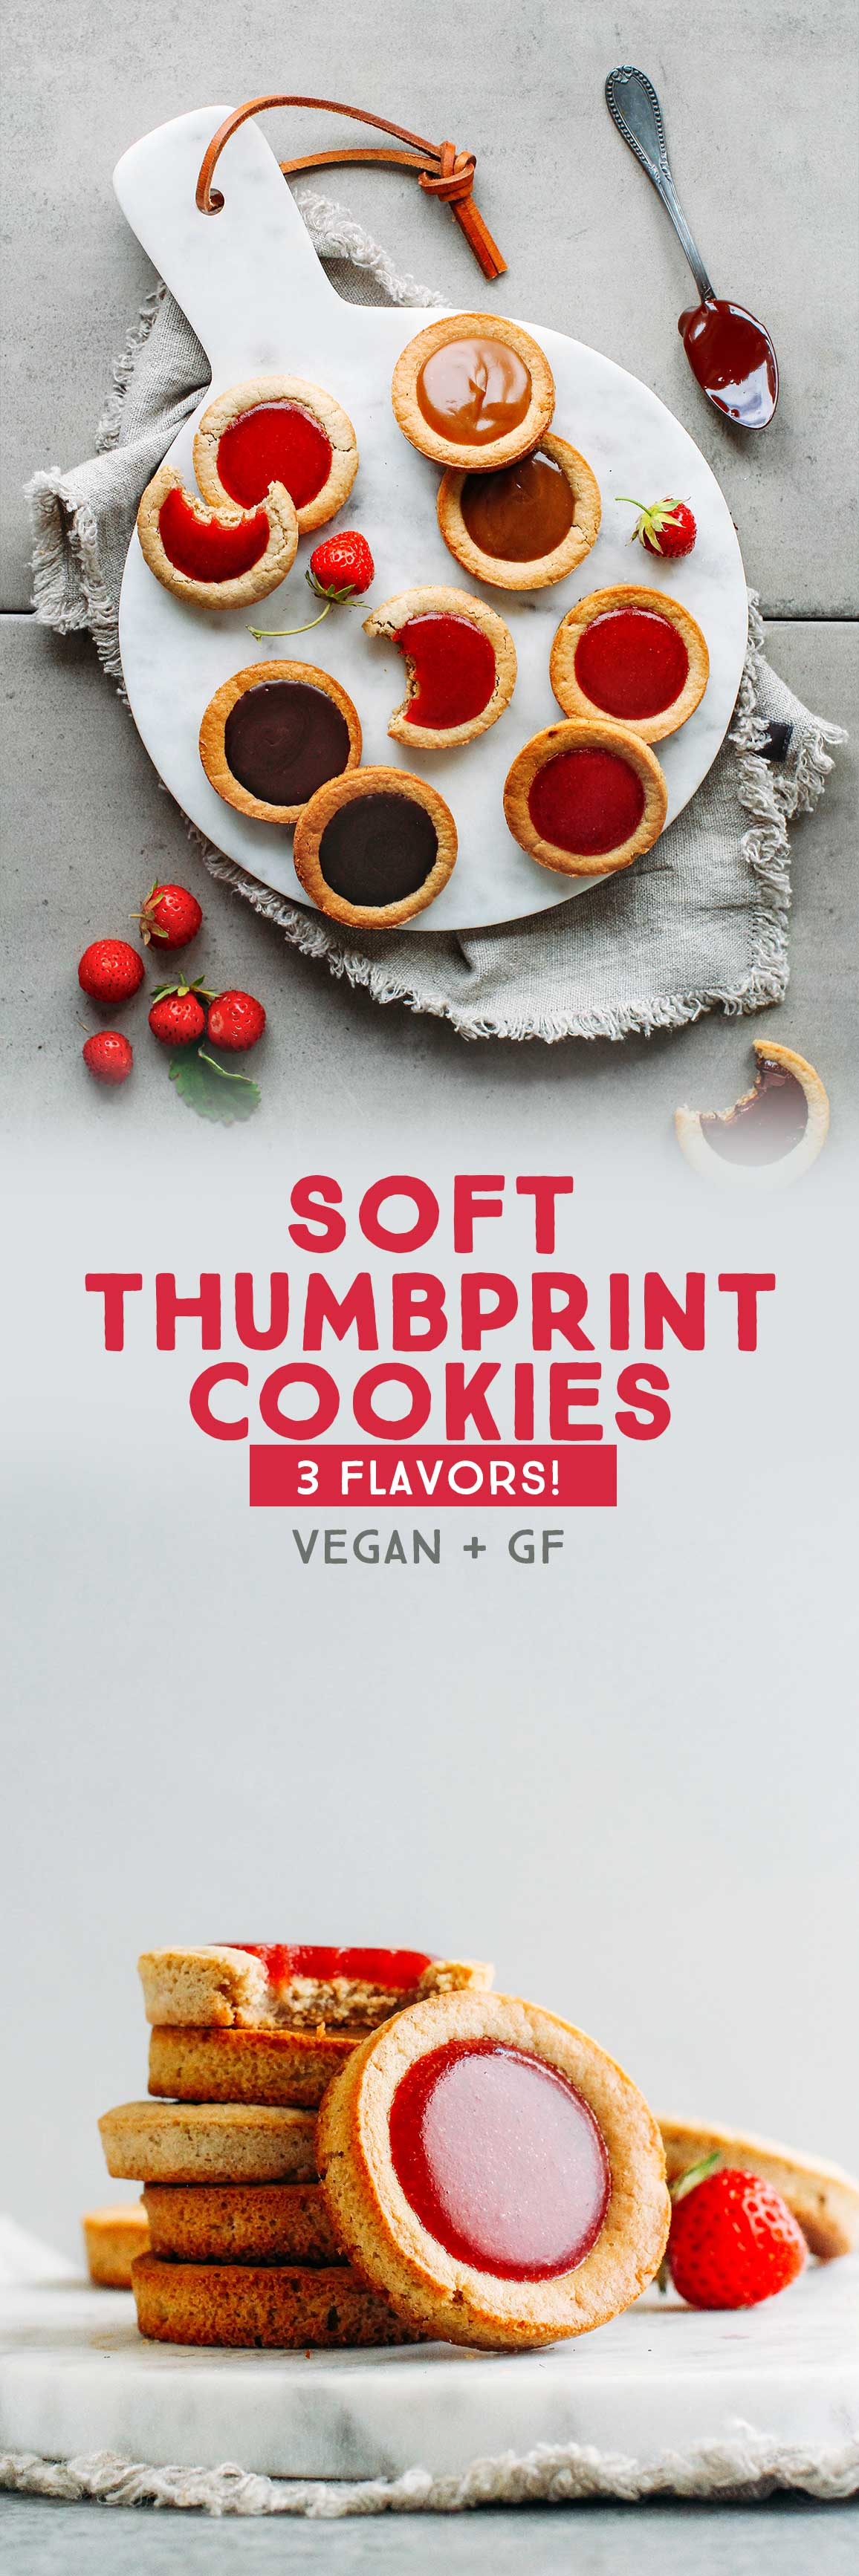 Soft Thumbprint Cookies - 3 Flavors! (Vegan + GF)